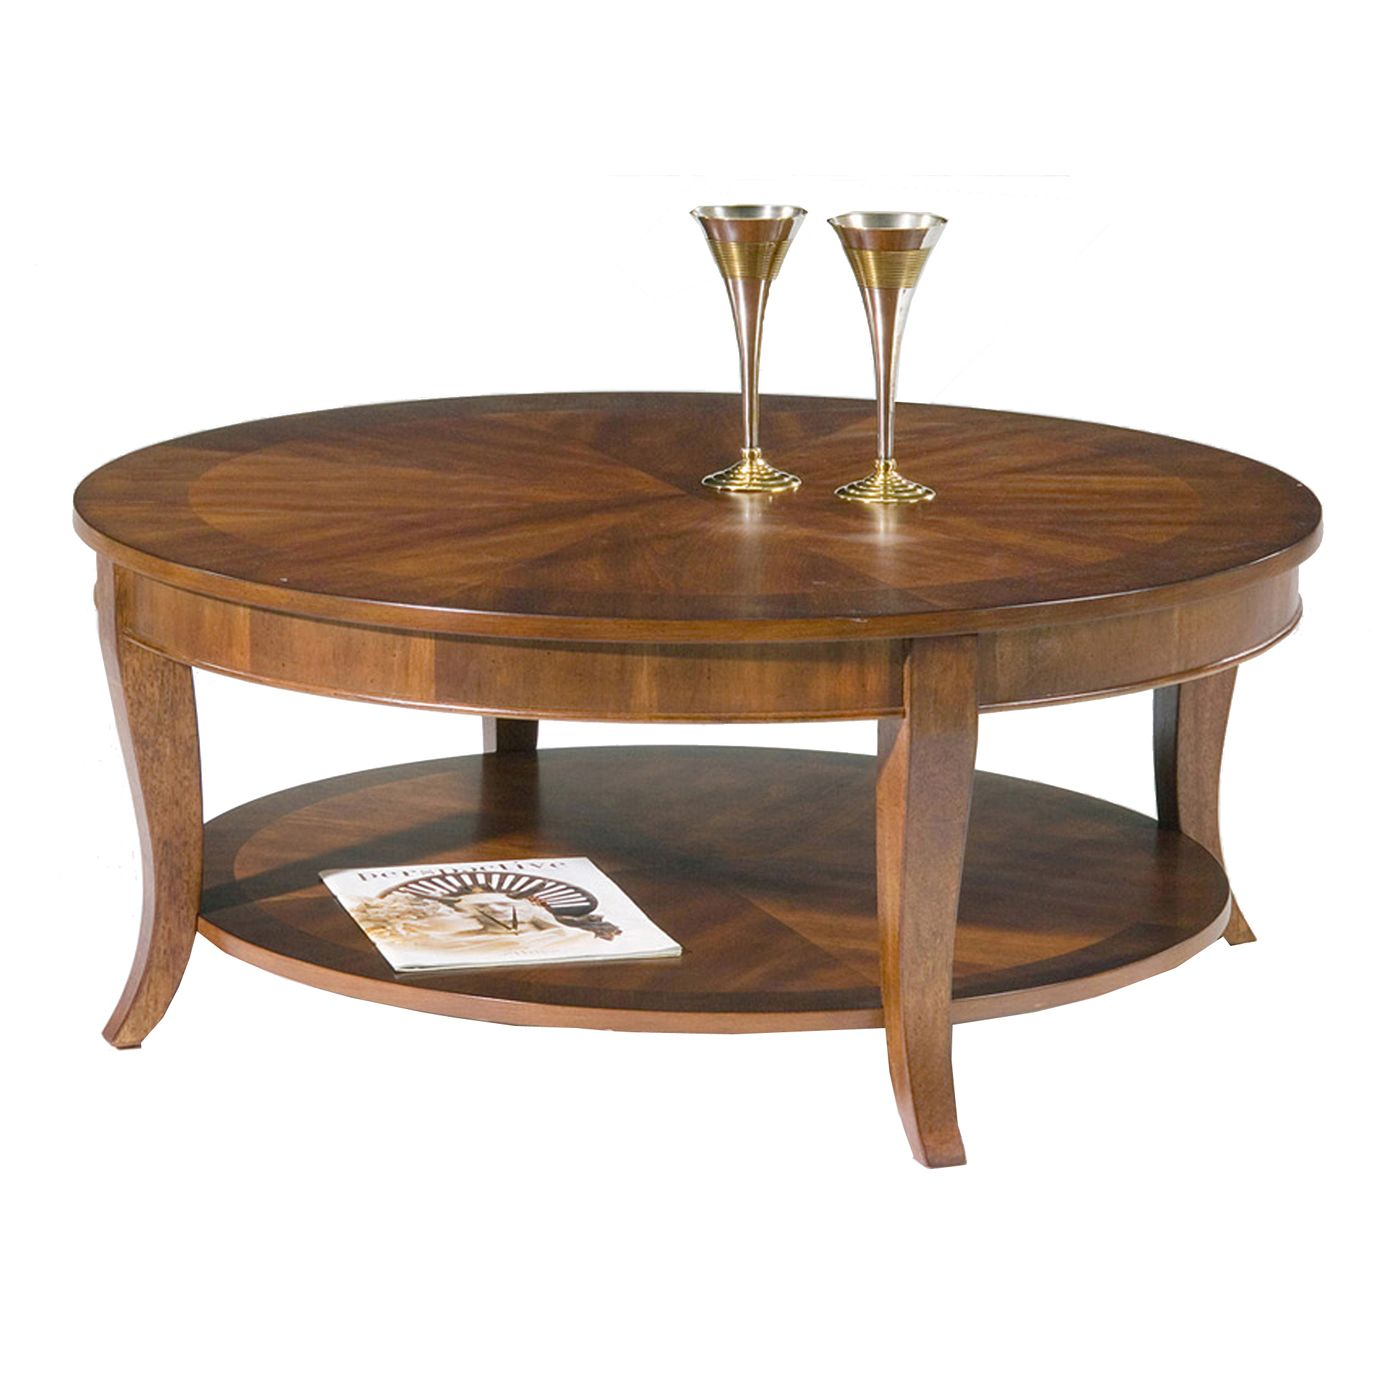 Liberty Furniture 748 Ot1010 Bradshaw Round Cocktail Table Home Furniture Showroom Target Coffee Table Circular Coffee Table Cherry Wood Coffee Table [ 1400 x 1400 Pixel ]